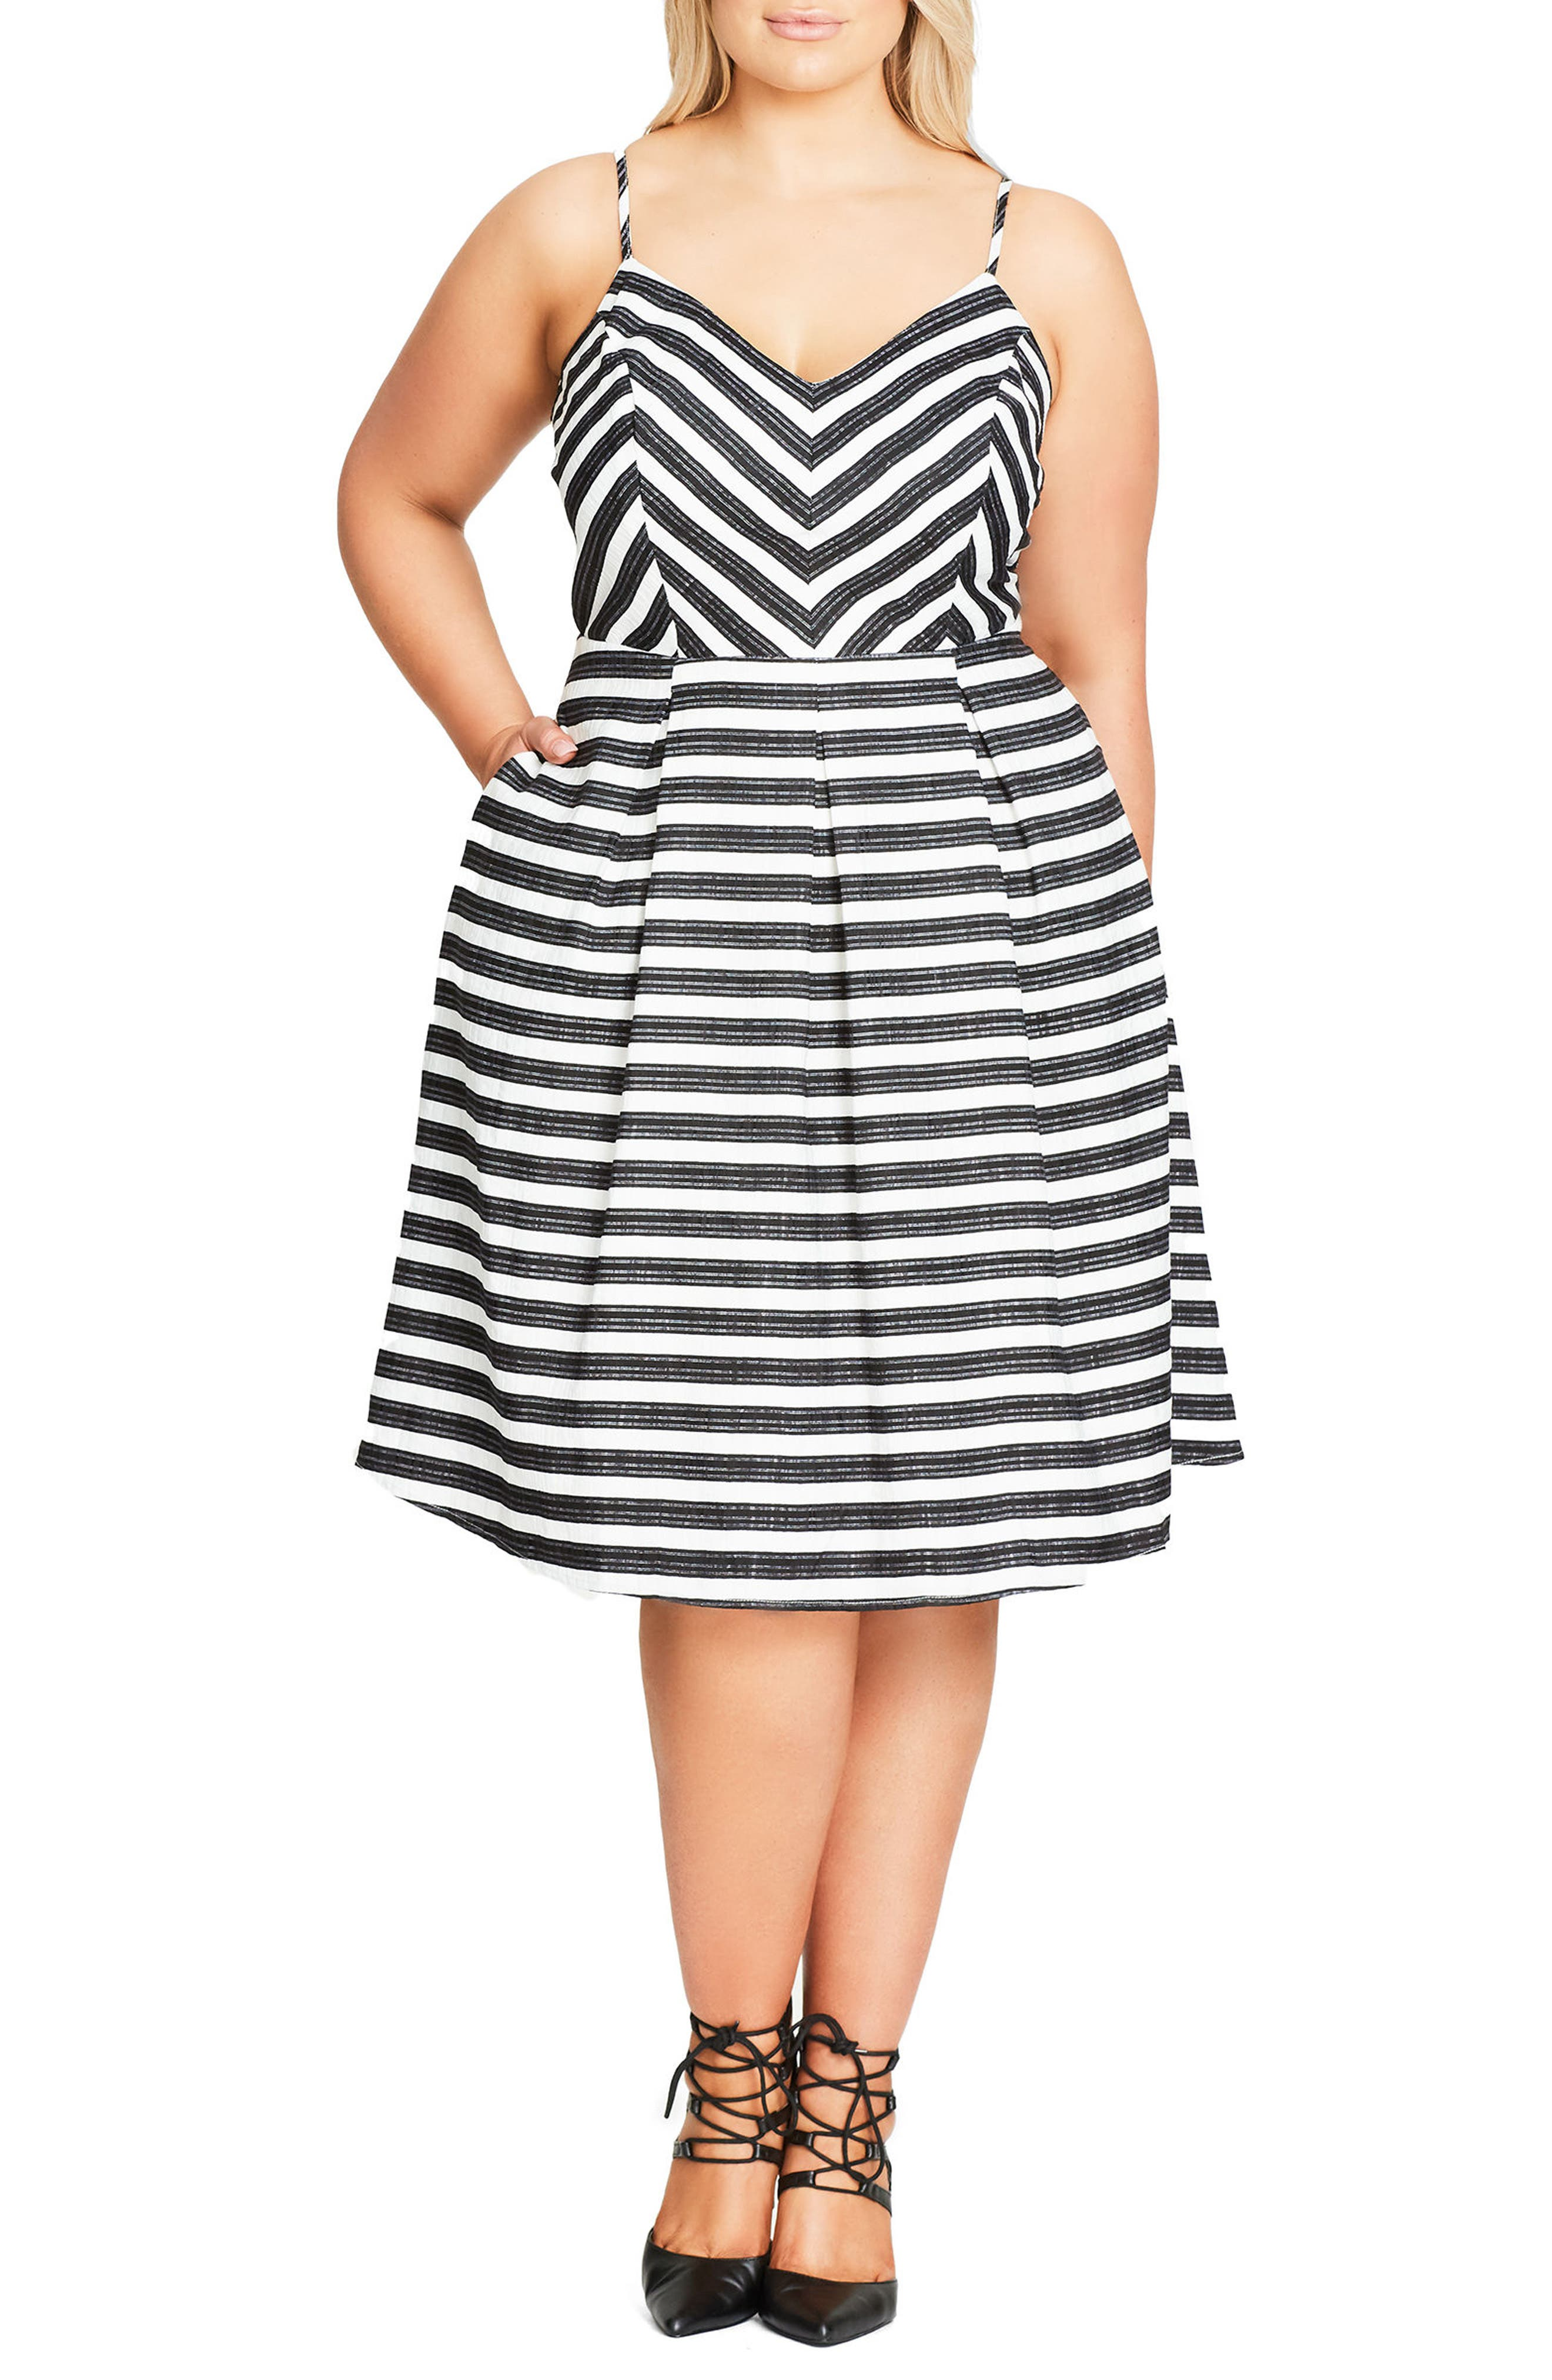 Main Image - City Chic Marilyn Stripe Fit & Flare Sundress (Plus Size)